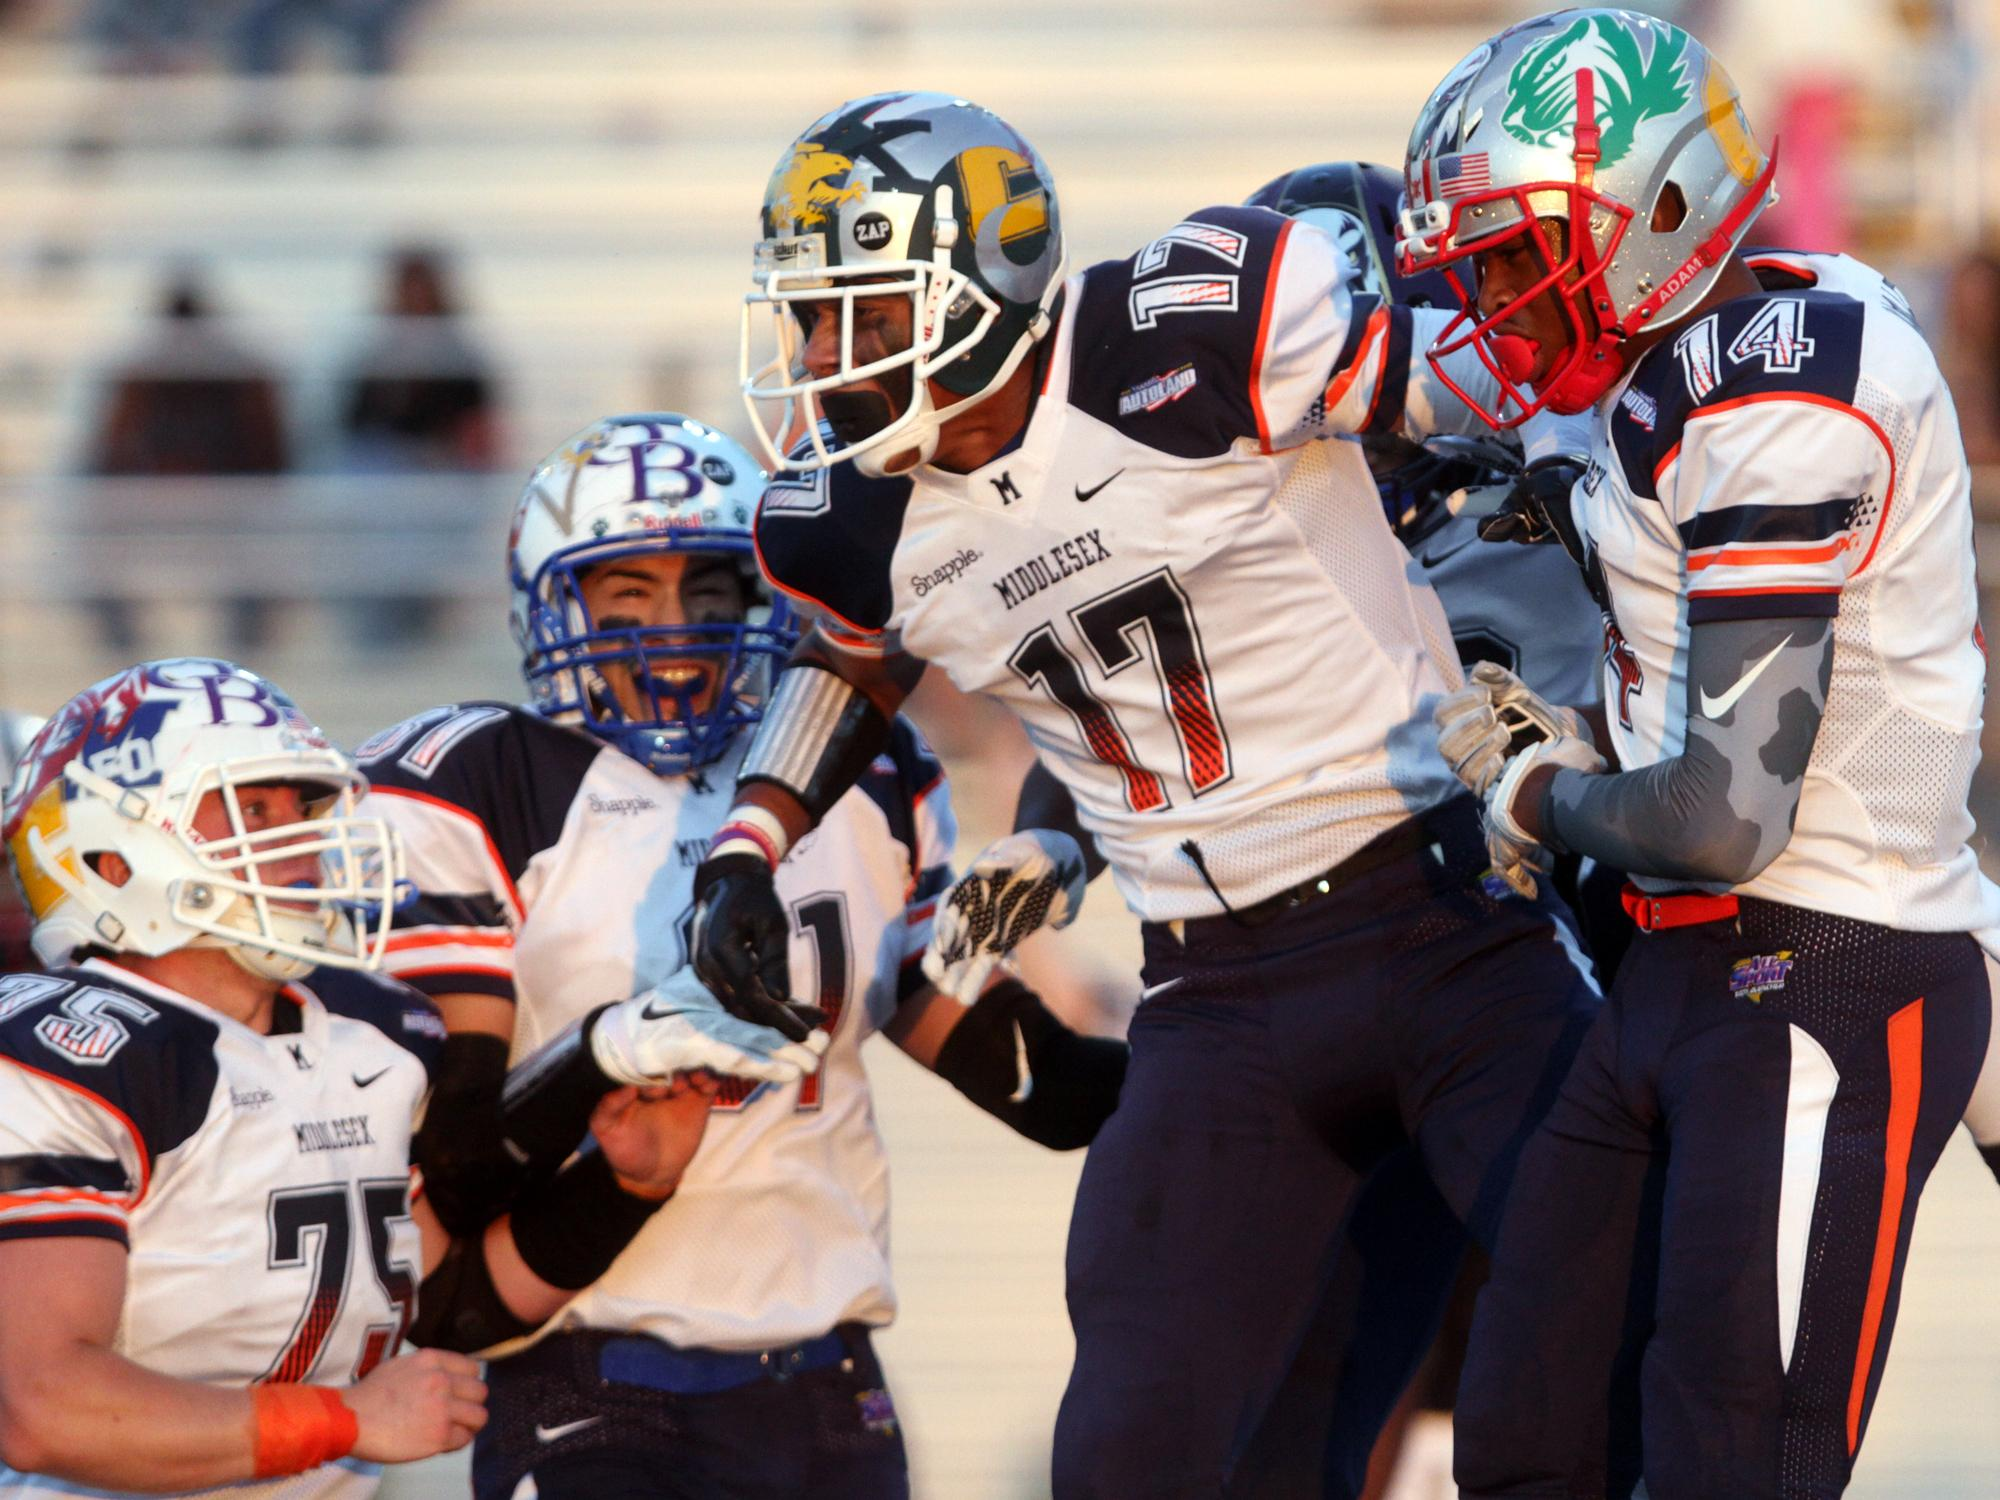 Javon Hicks (17) of St. Joseph celebrates with Middlesex teammates after scoring late in the second quarter during Snapple Bowl XXII, Thursday, July 16, 2015, at Kean University in Union, NJ.